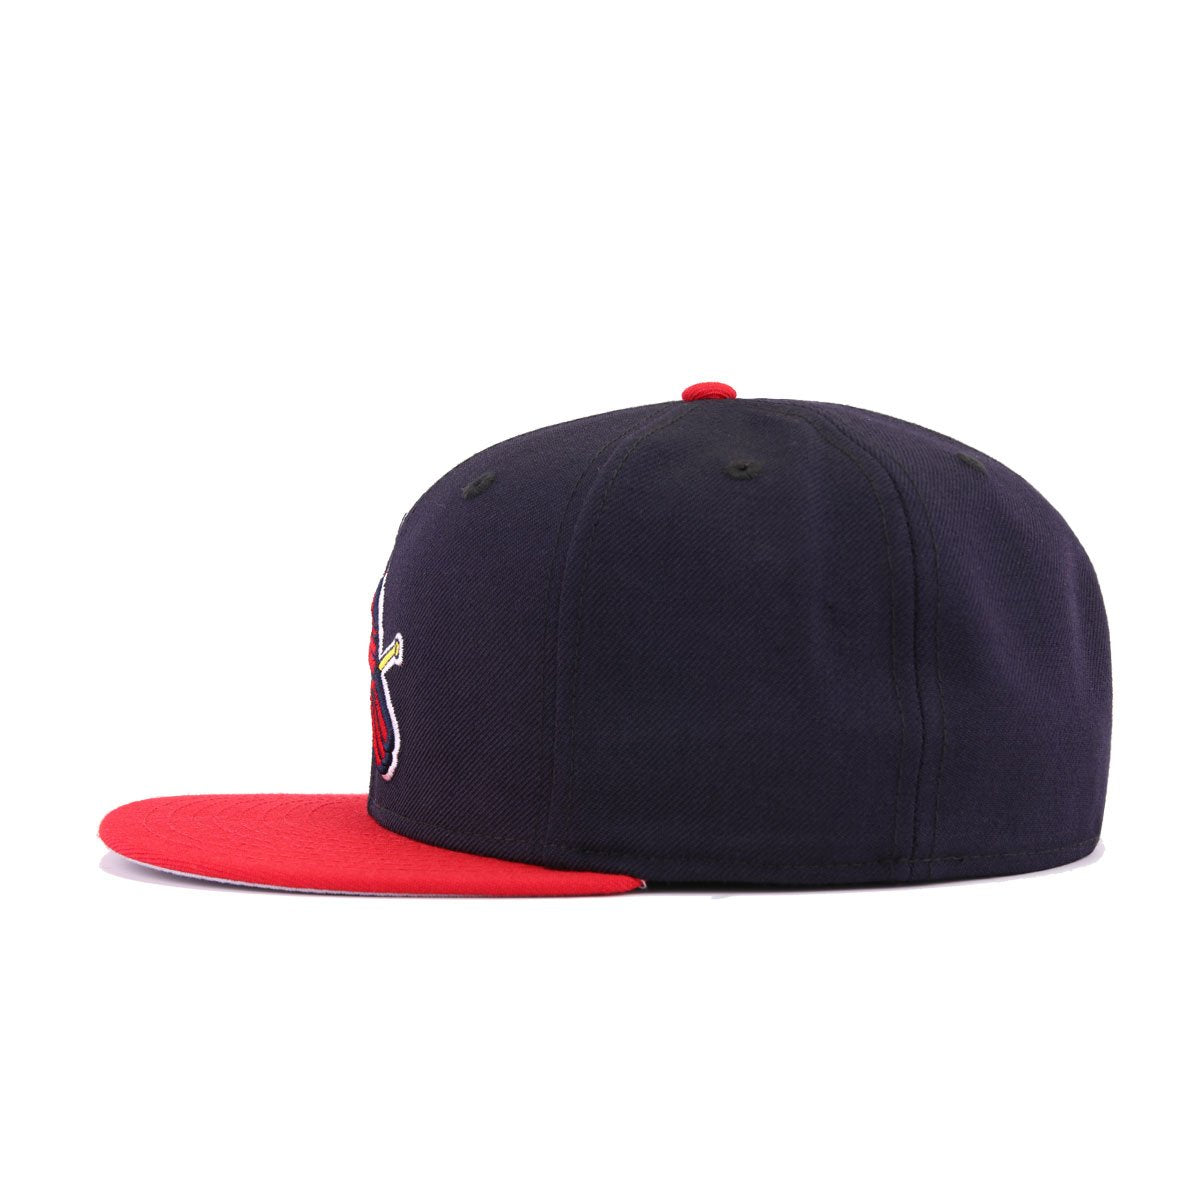 St Louis Cardinals Navy Scarlet Alternate New Era 59Fifty Fitted